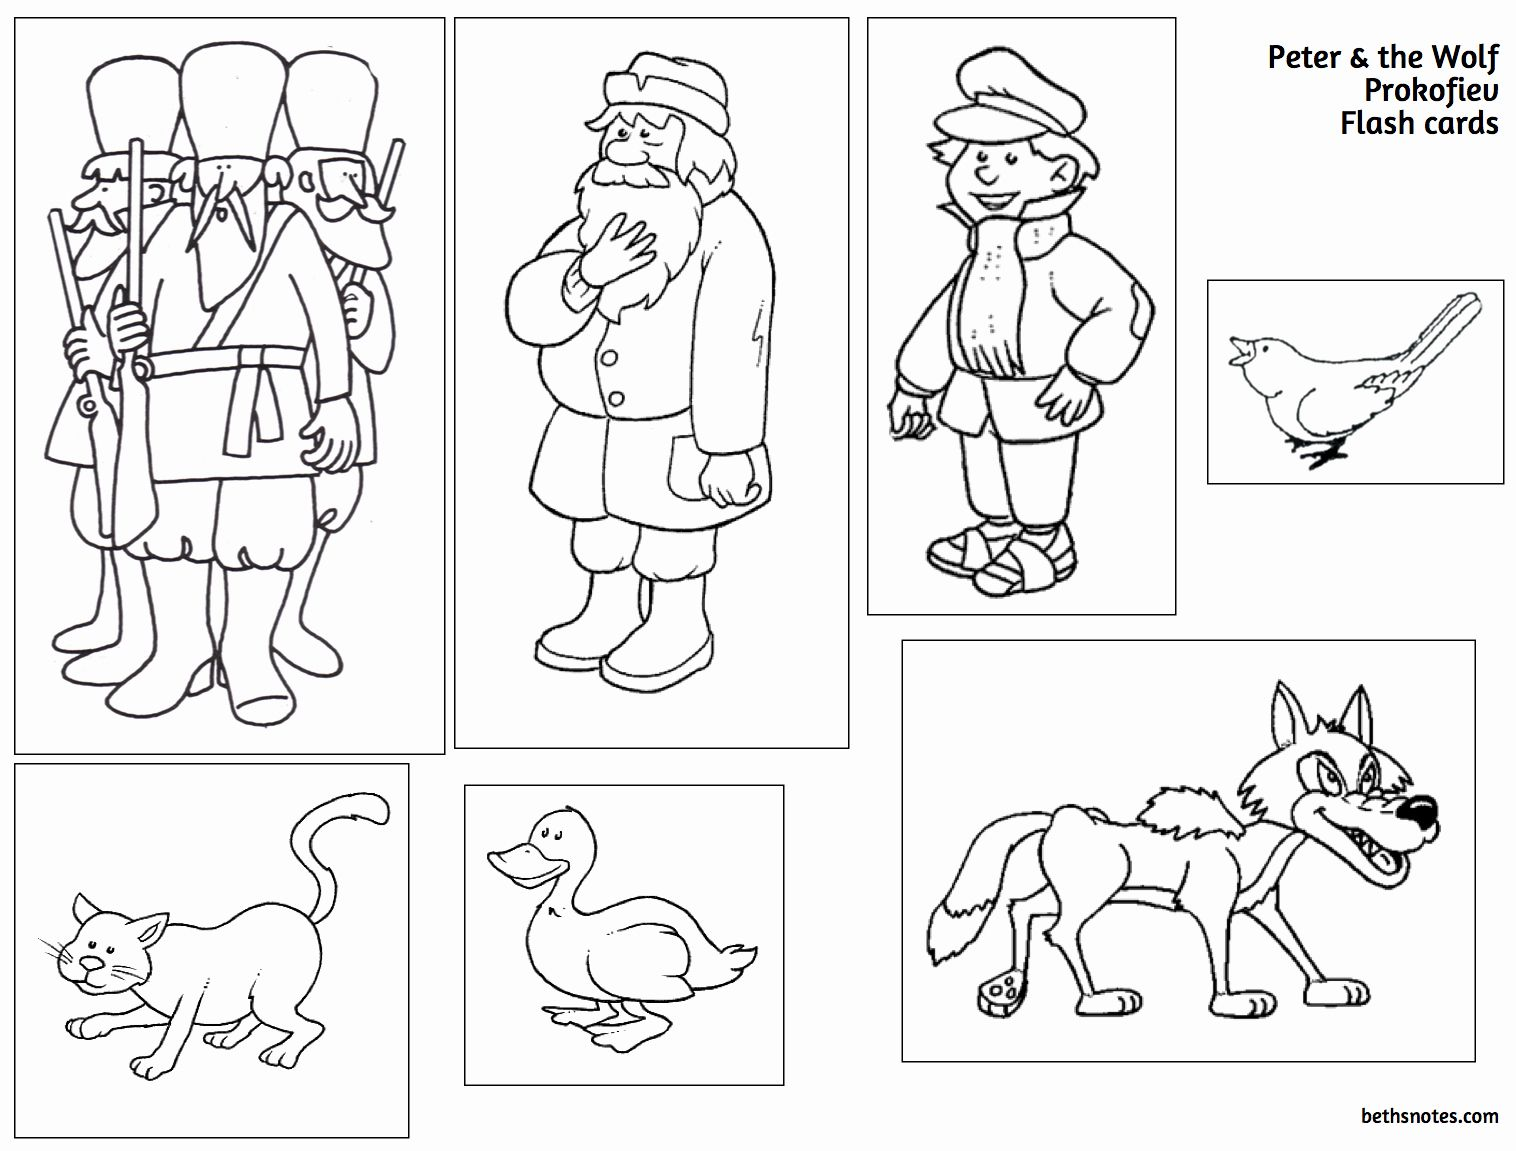 50 Peter And The Wolf Worksheet In